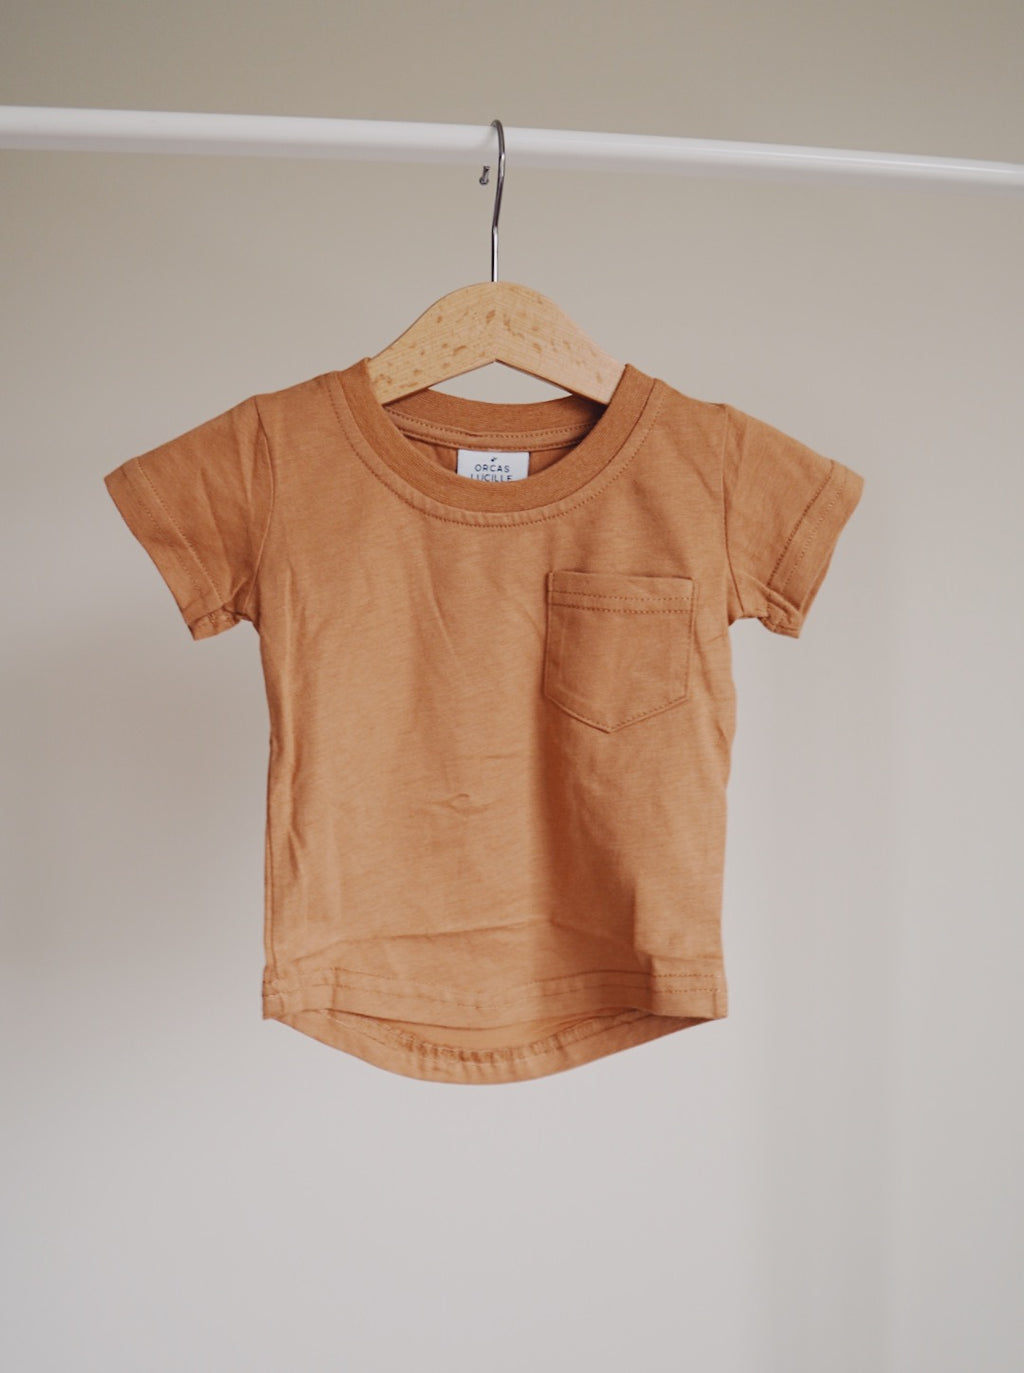 Brushed Cotton Tee - Camel